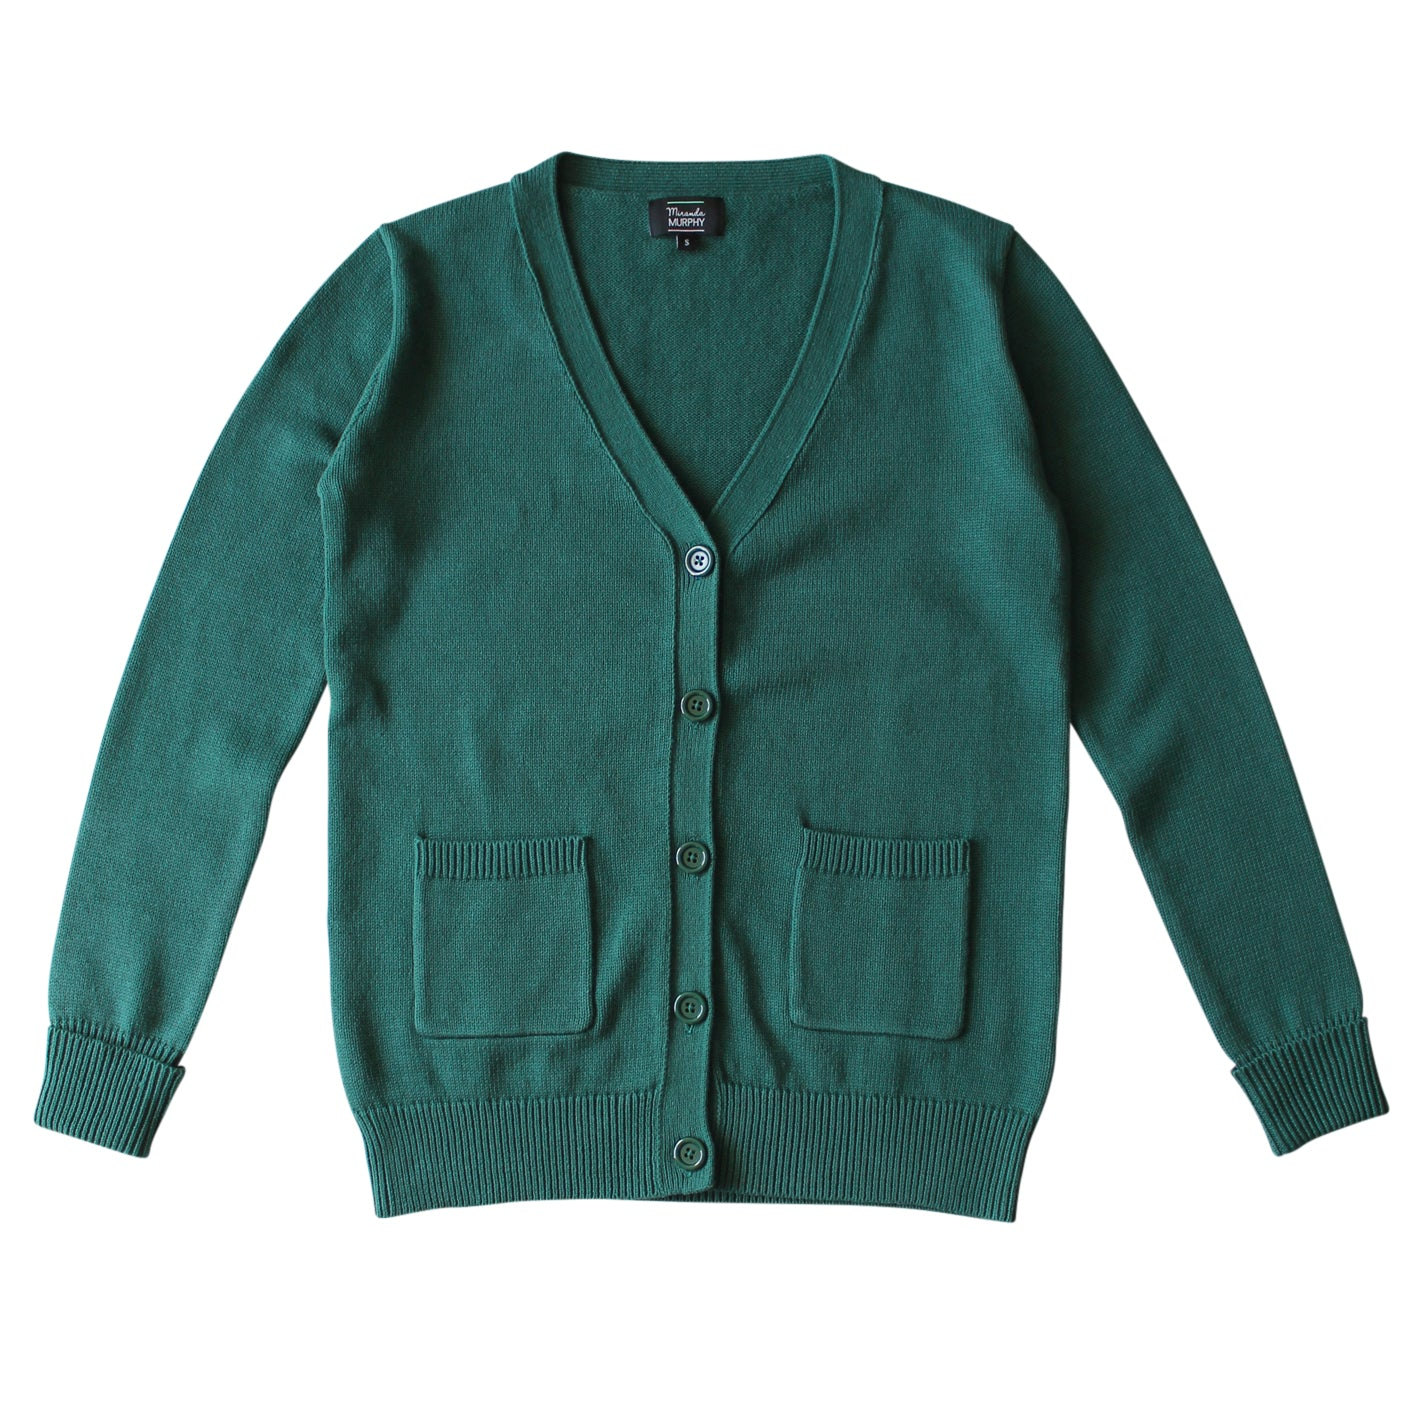 Winter Cardigan - Spruce Green